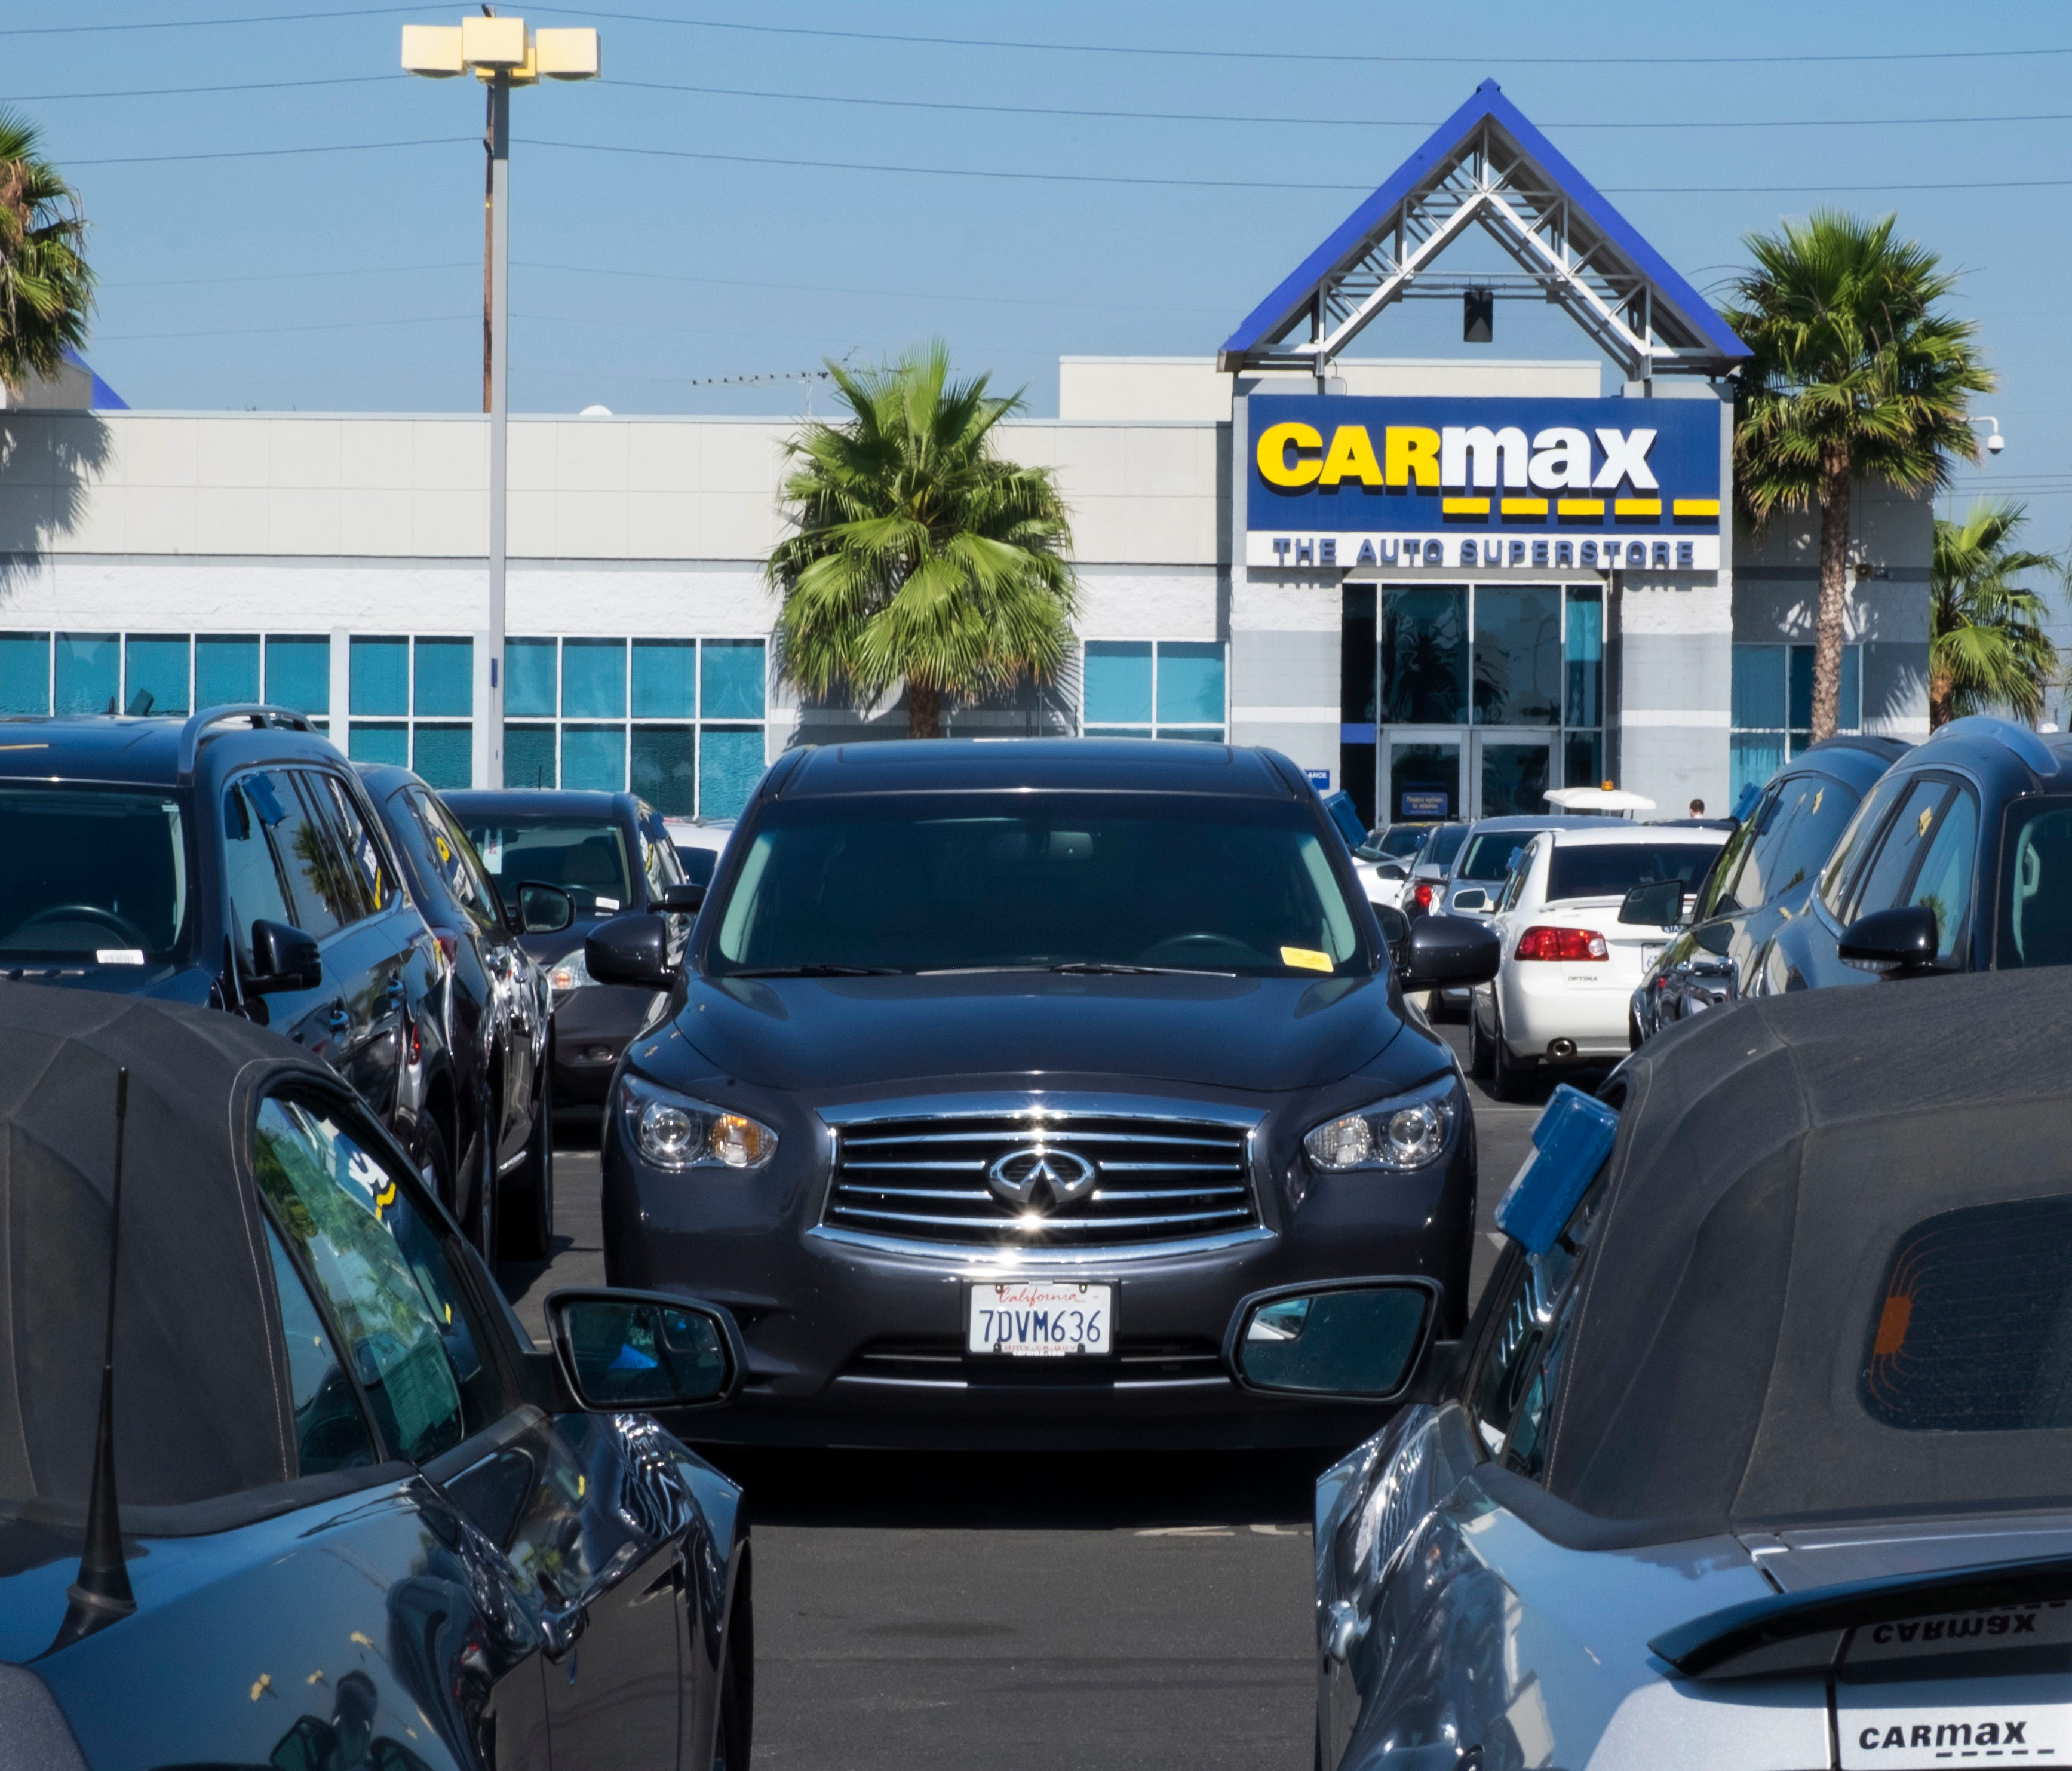 This June 28, 2017, photo provided by Edmunds shows the lot of a CarMax used-car